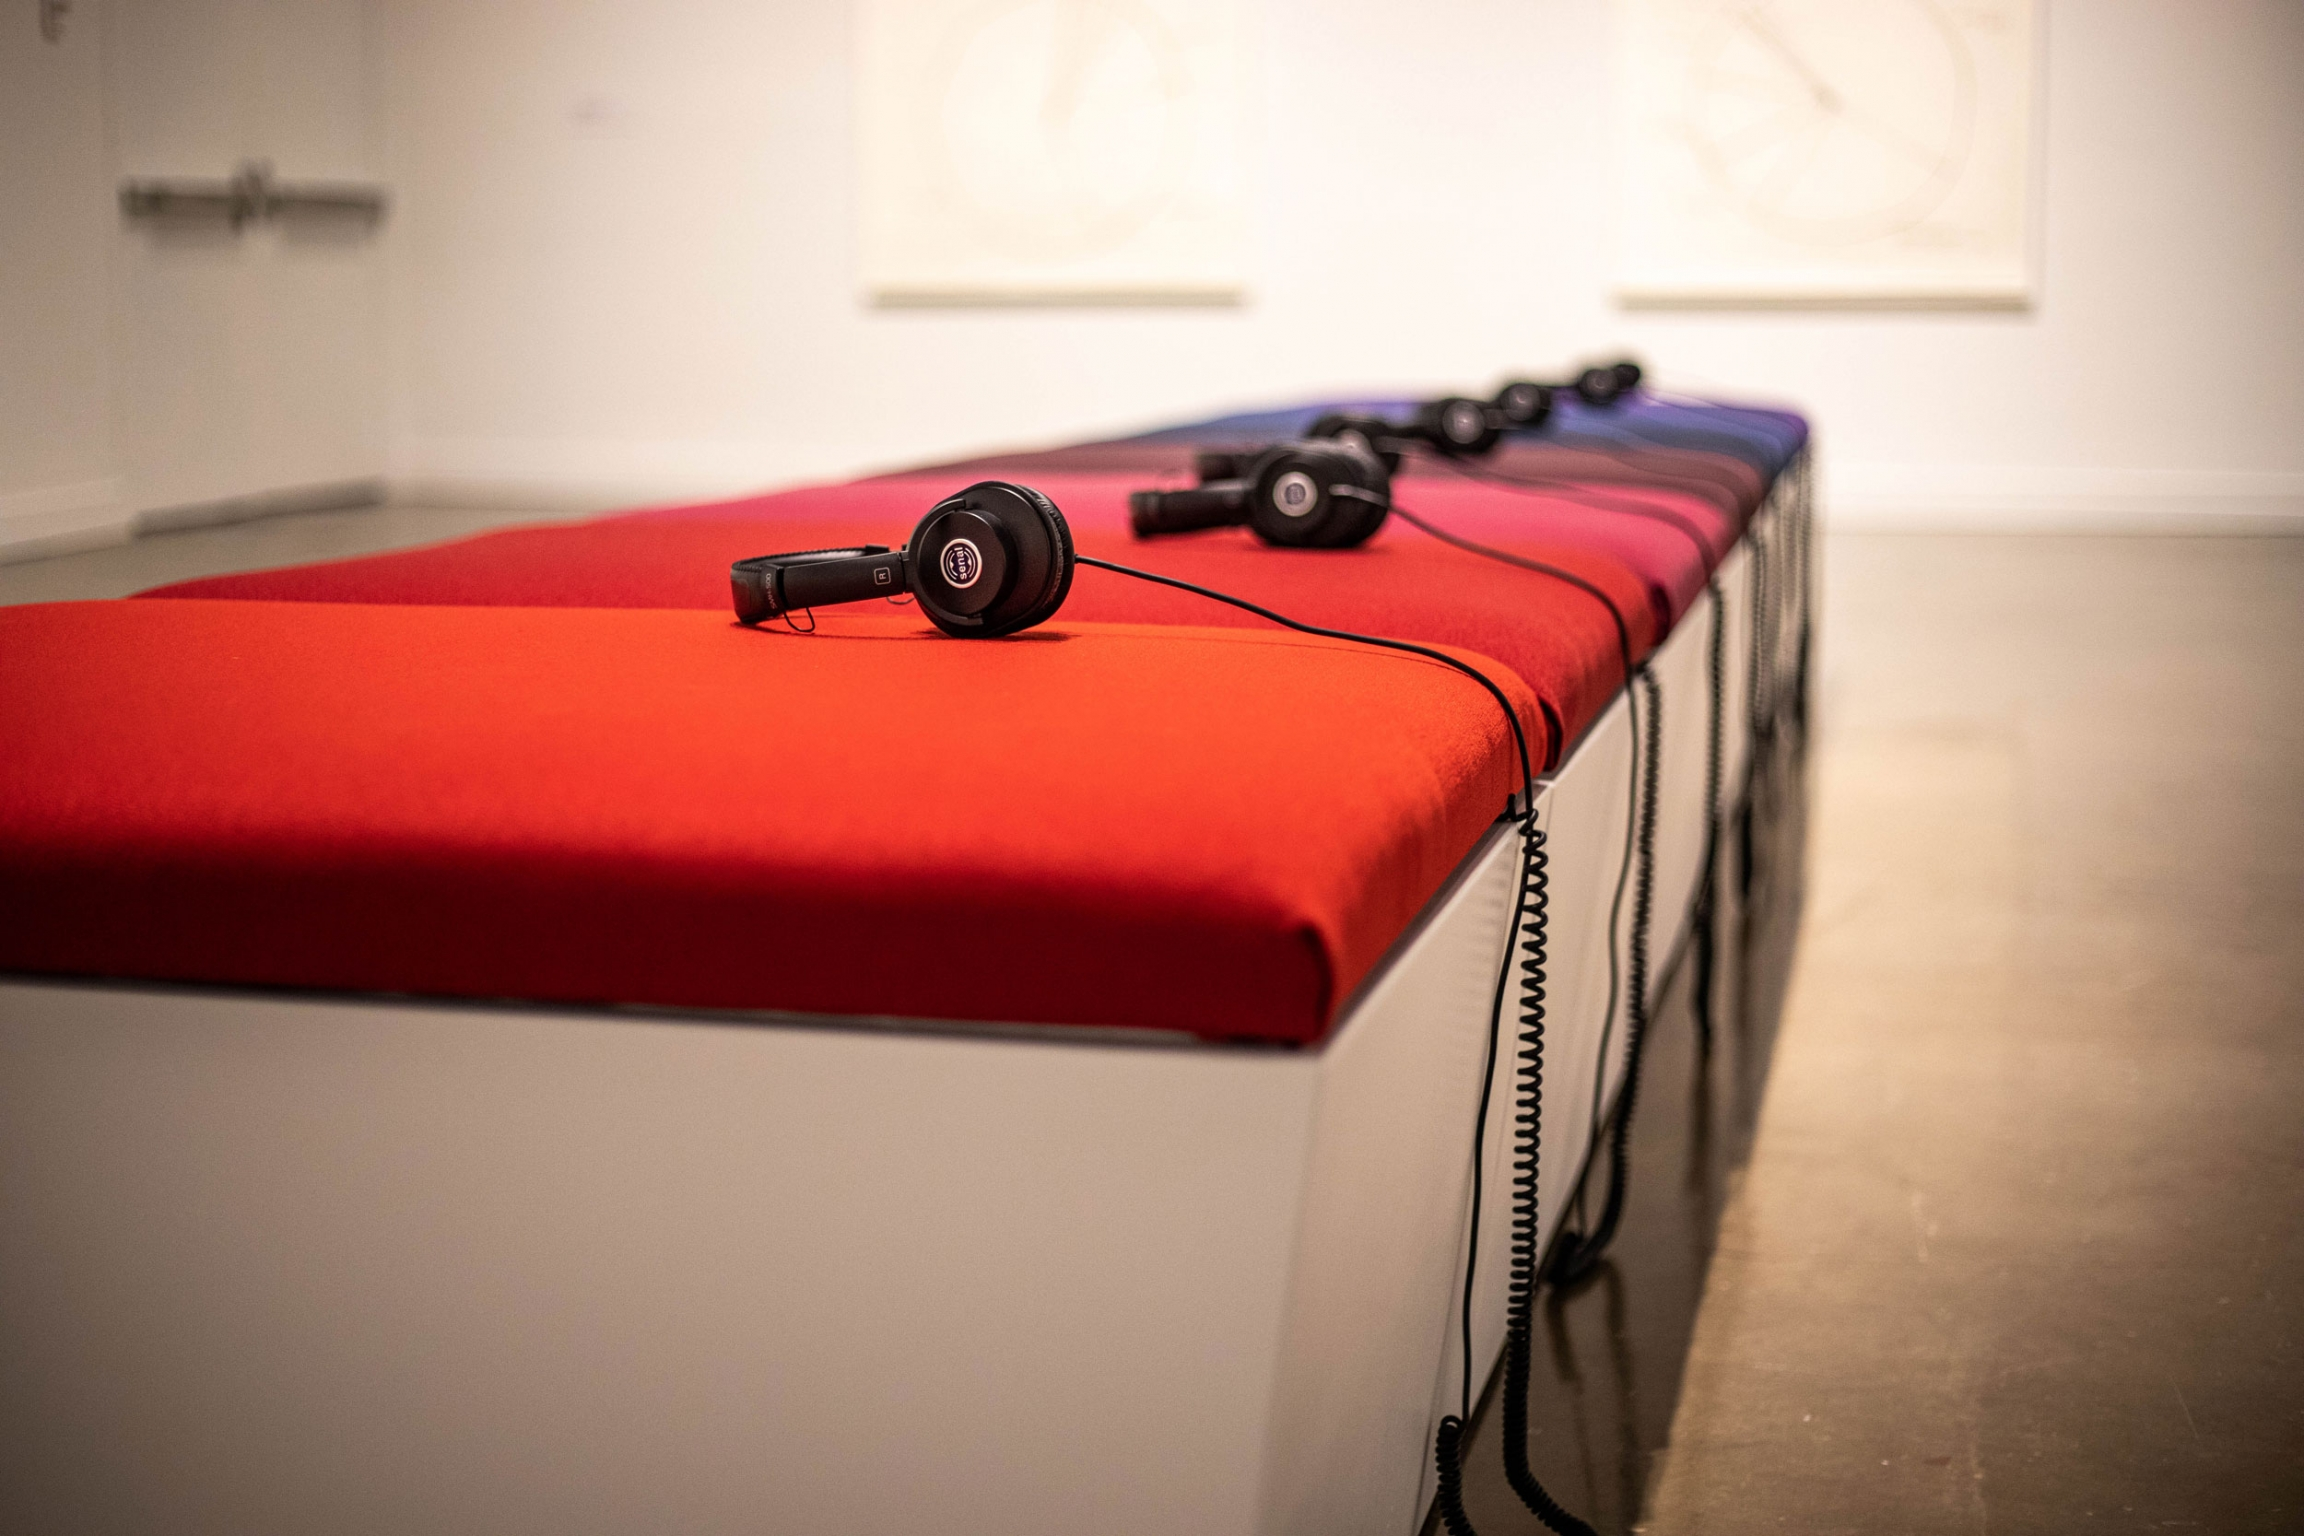 A long bench is shown with brightly colored cushions and headphones on each cushion.